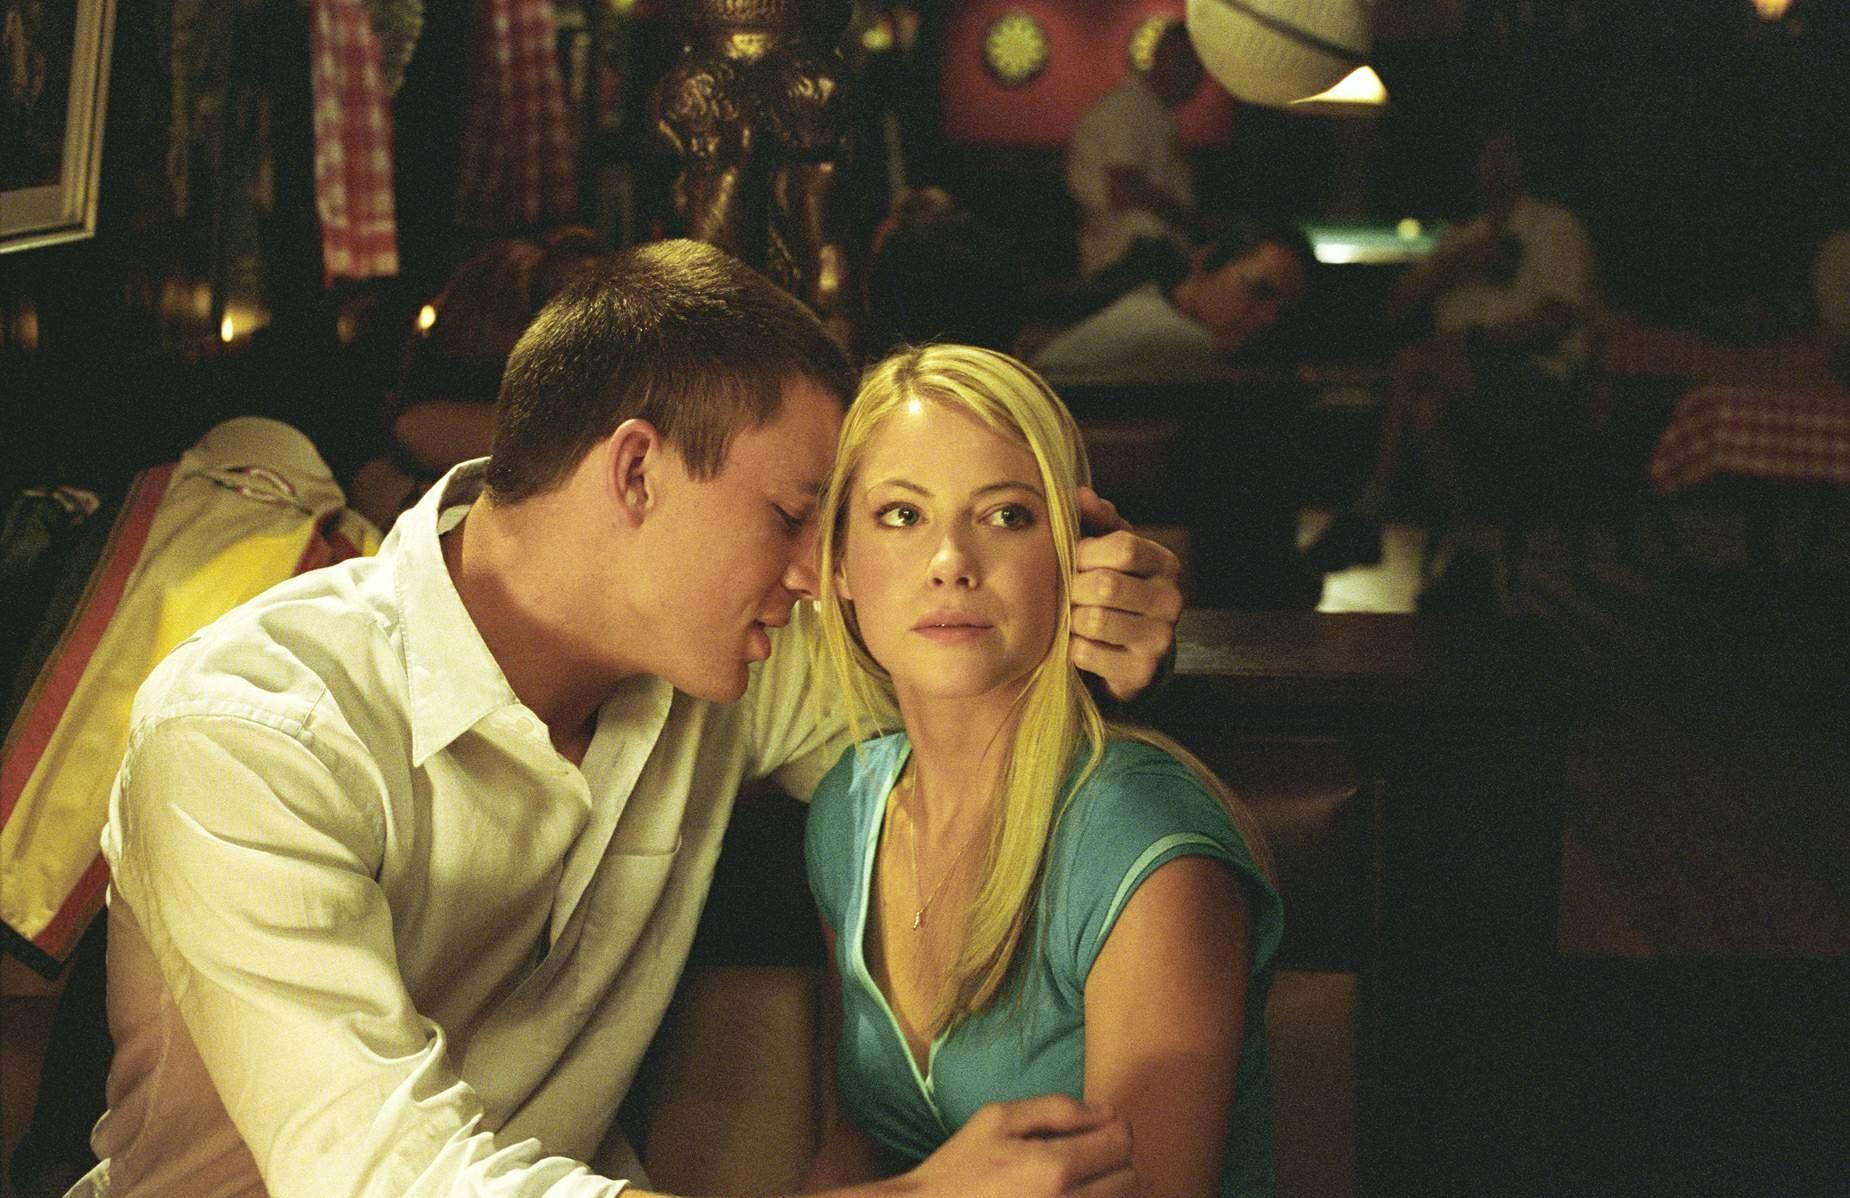 Laura & Channing Tatum in She's the Man